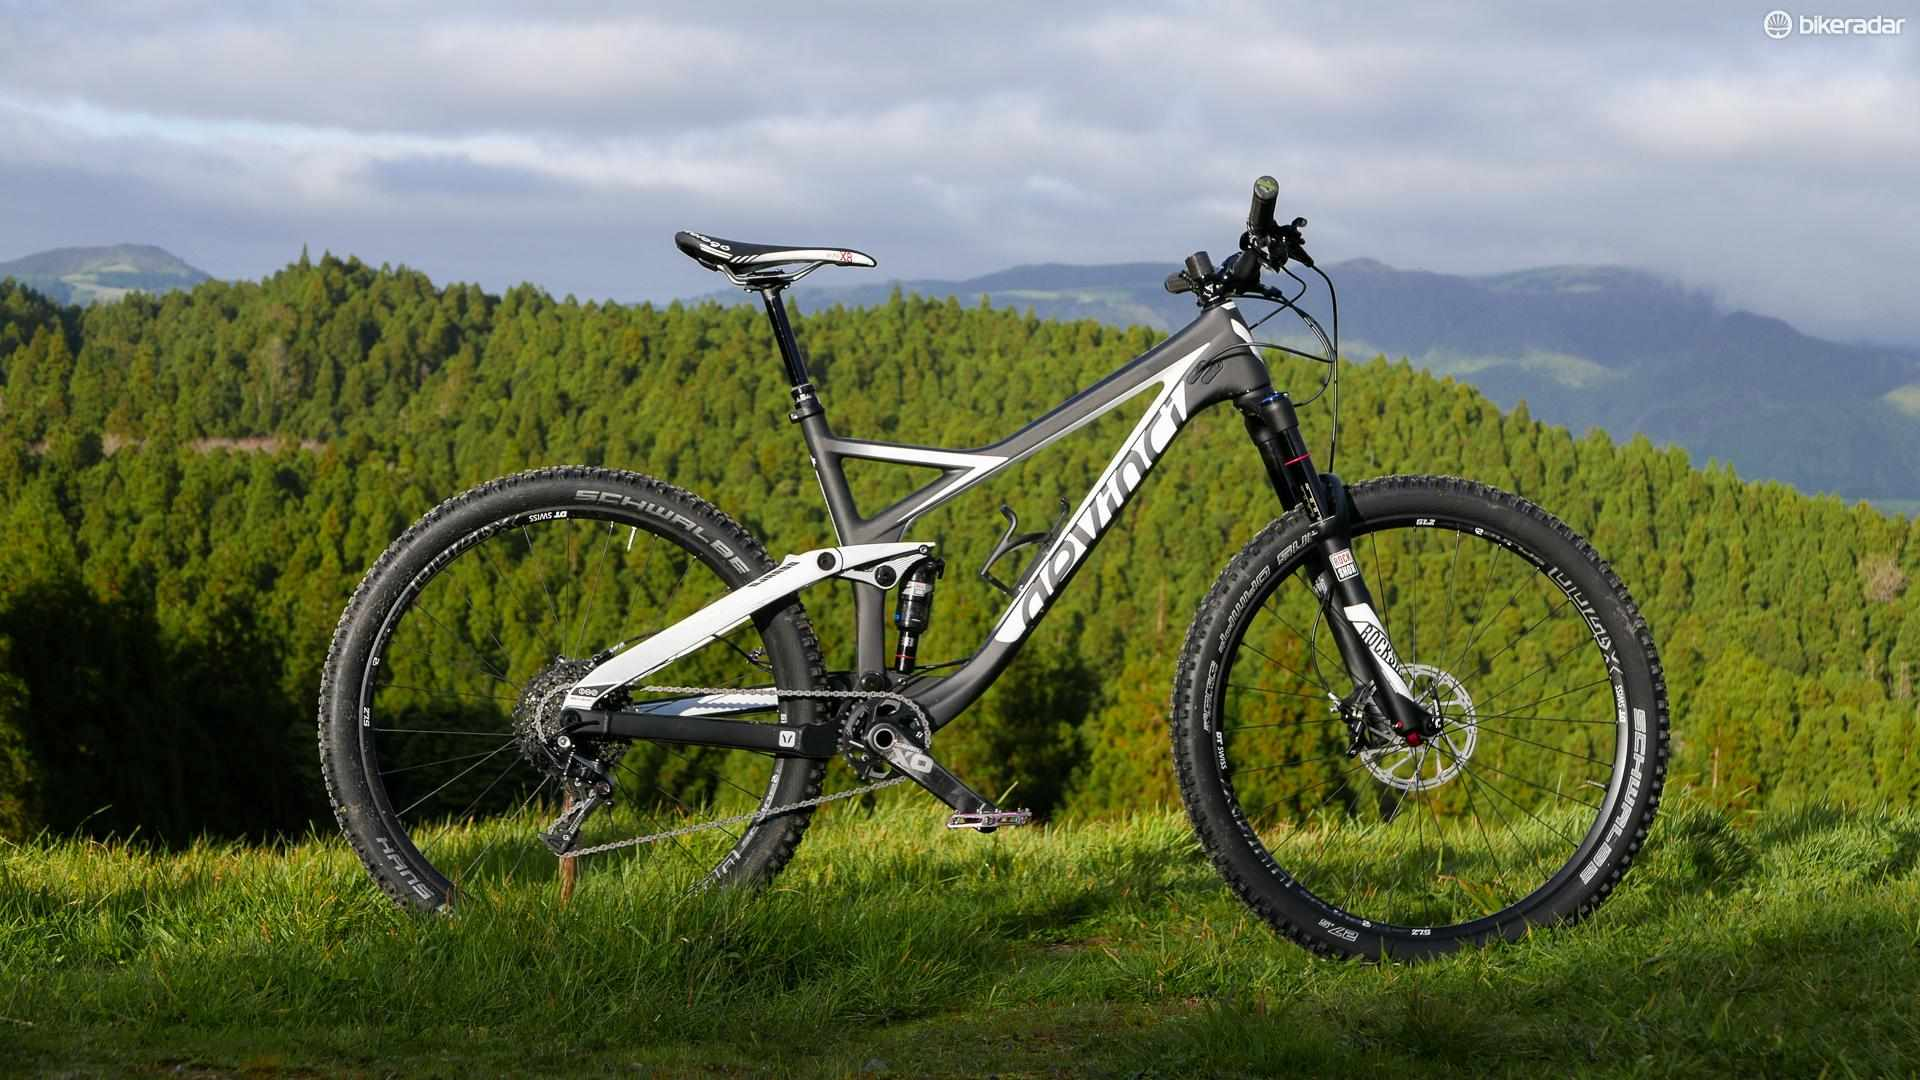 Devinci's Django Carbon pairs 120mm of rear wheel travel with 130mm up front